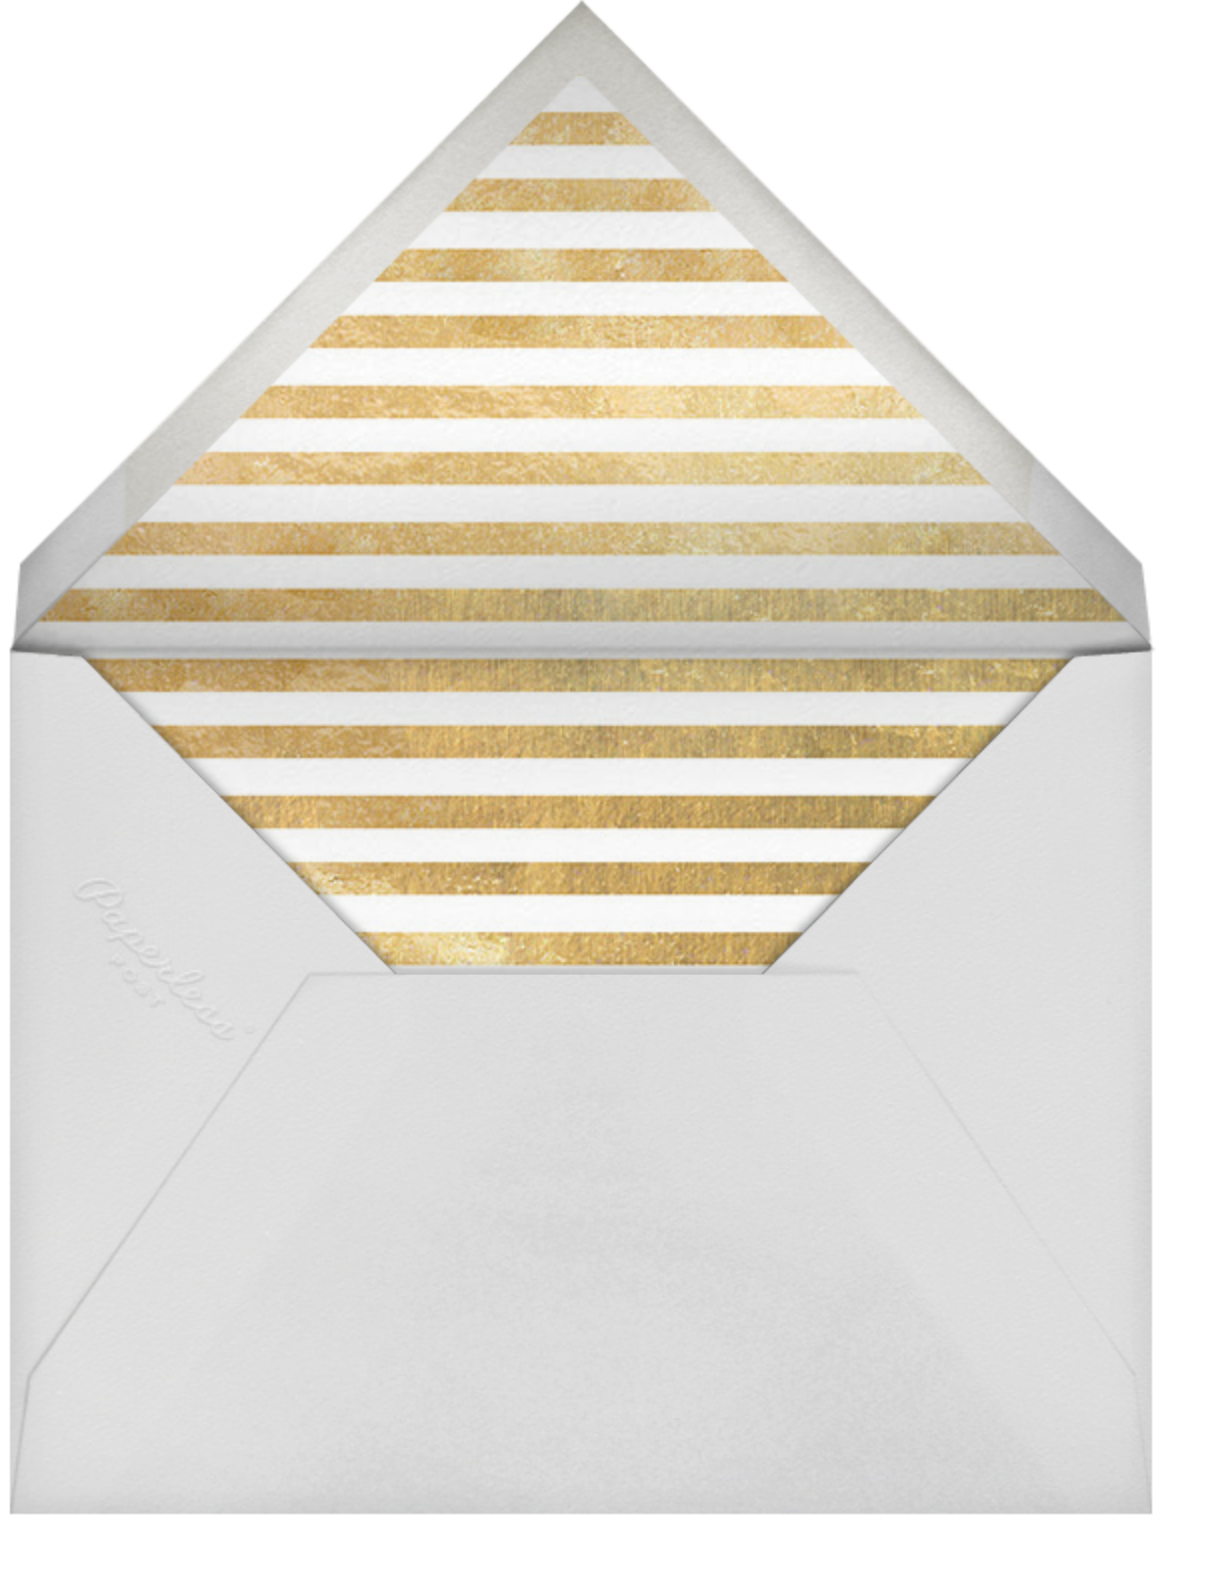 Come Celebrate - Ivory/Gold - kate spade new york - Christmas party - envelope back